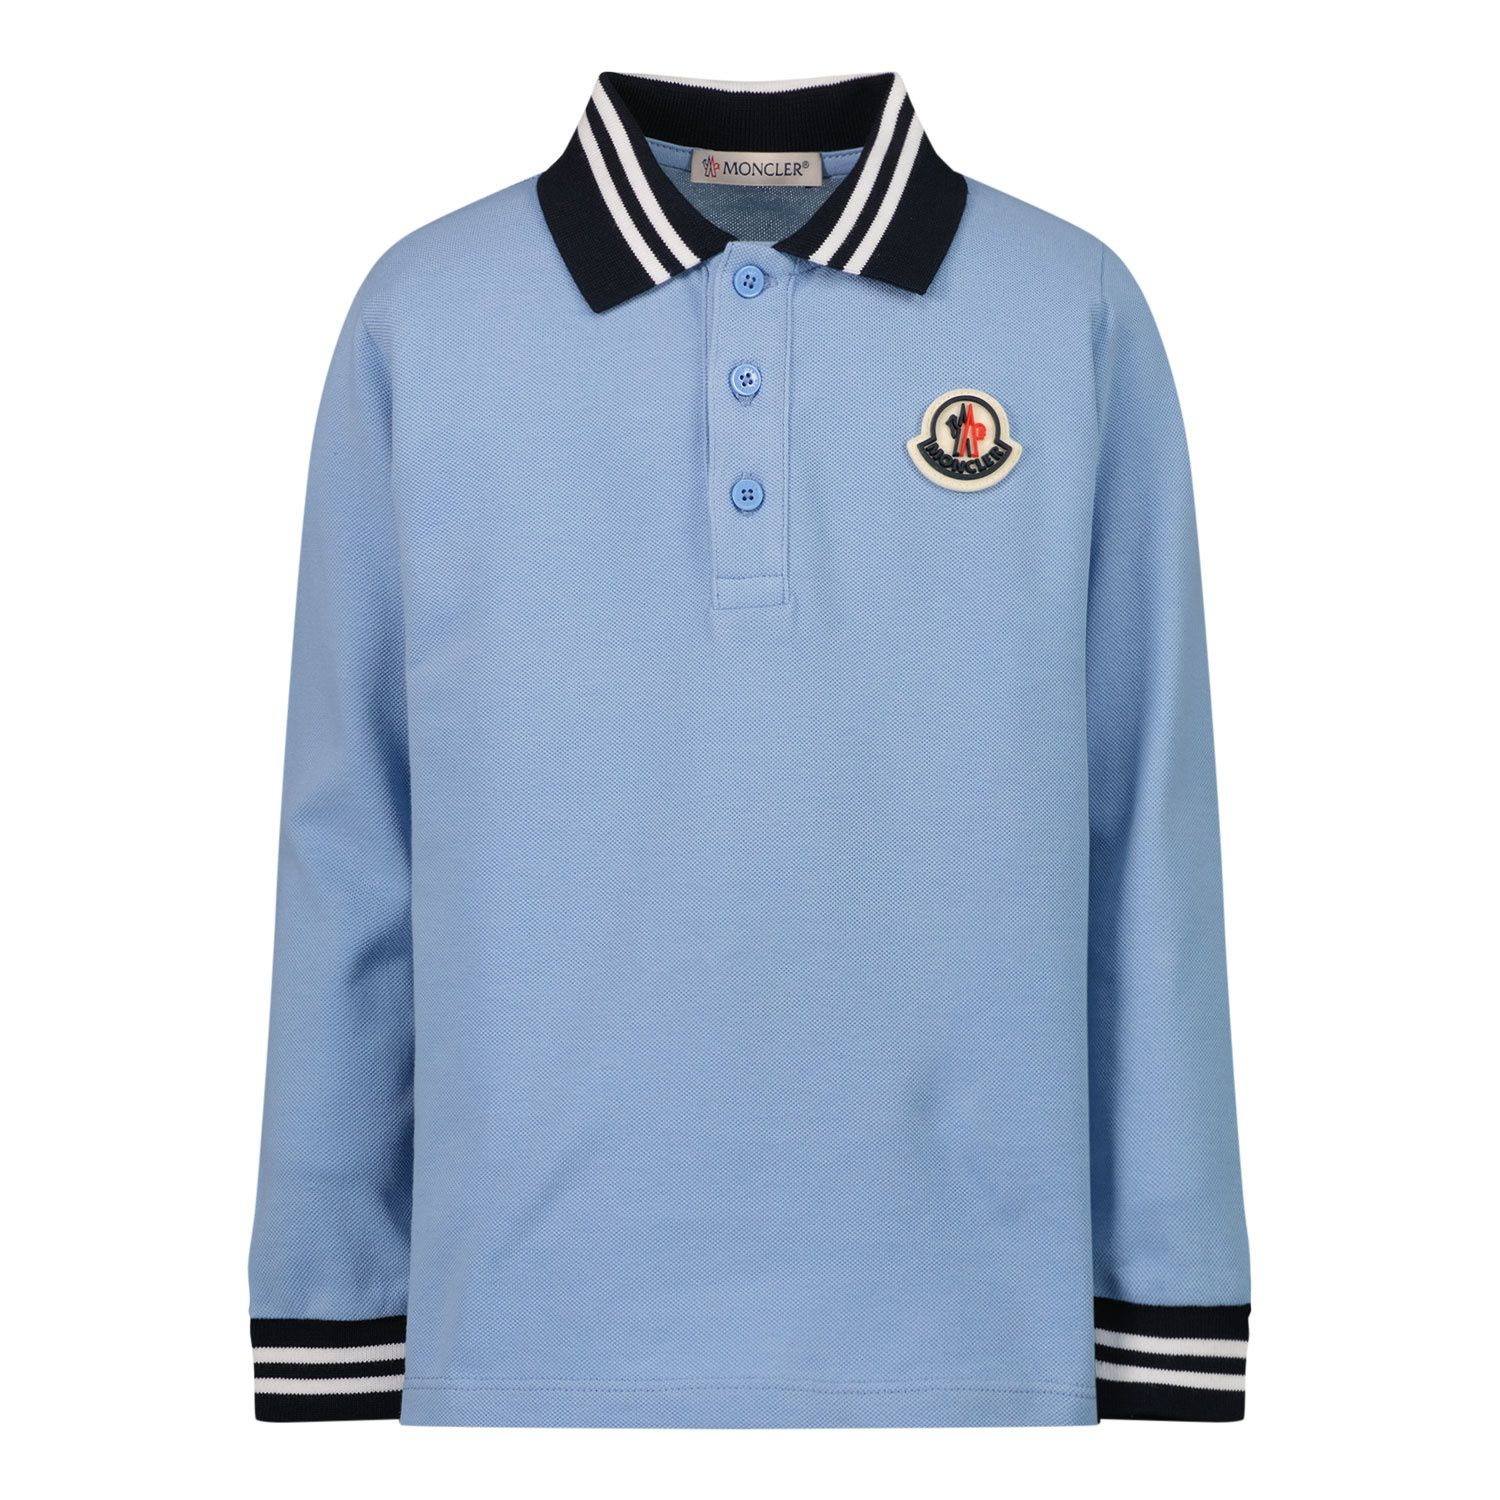 Picture of Moncler 8B70820 baby poloshirt light blue